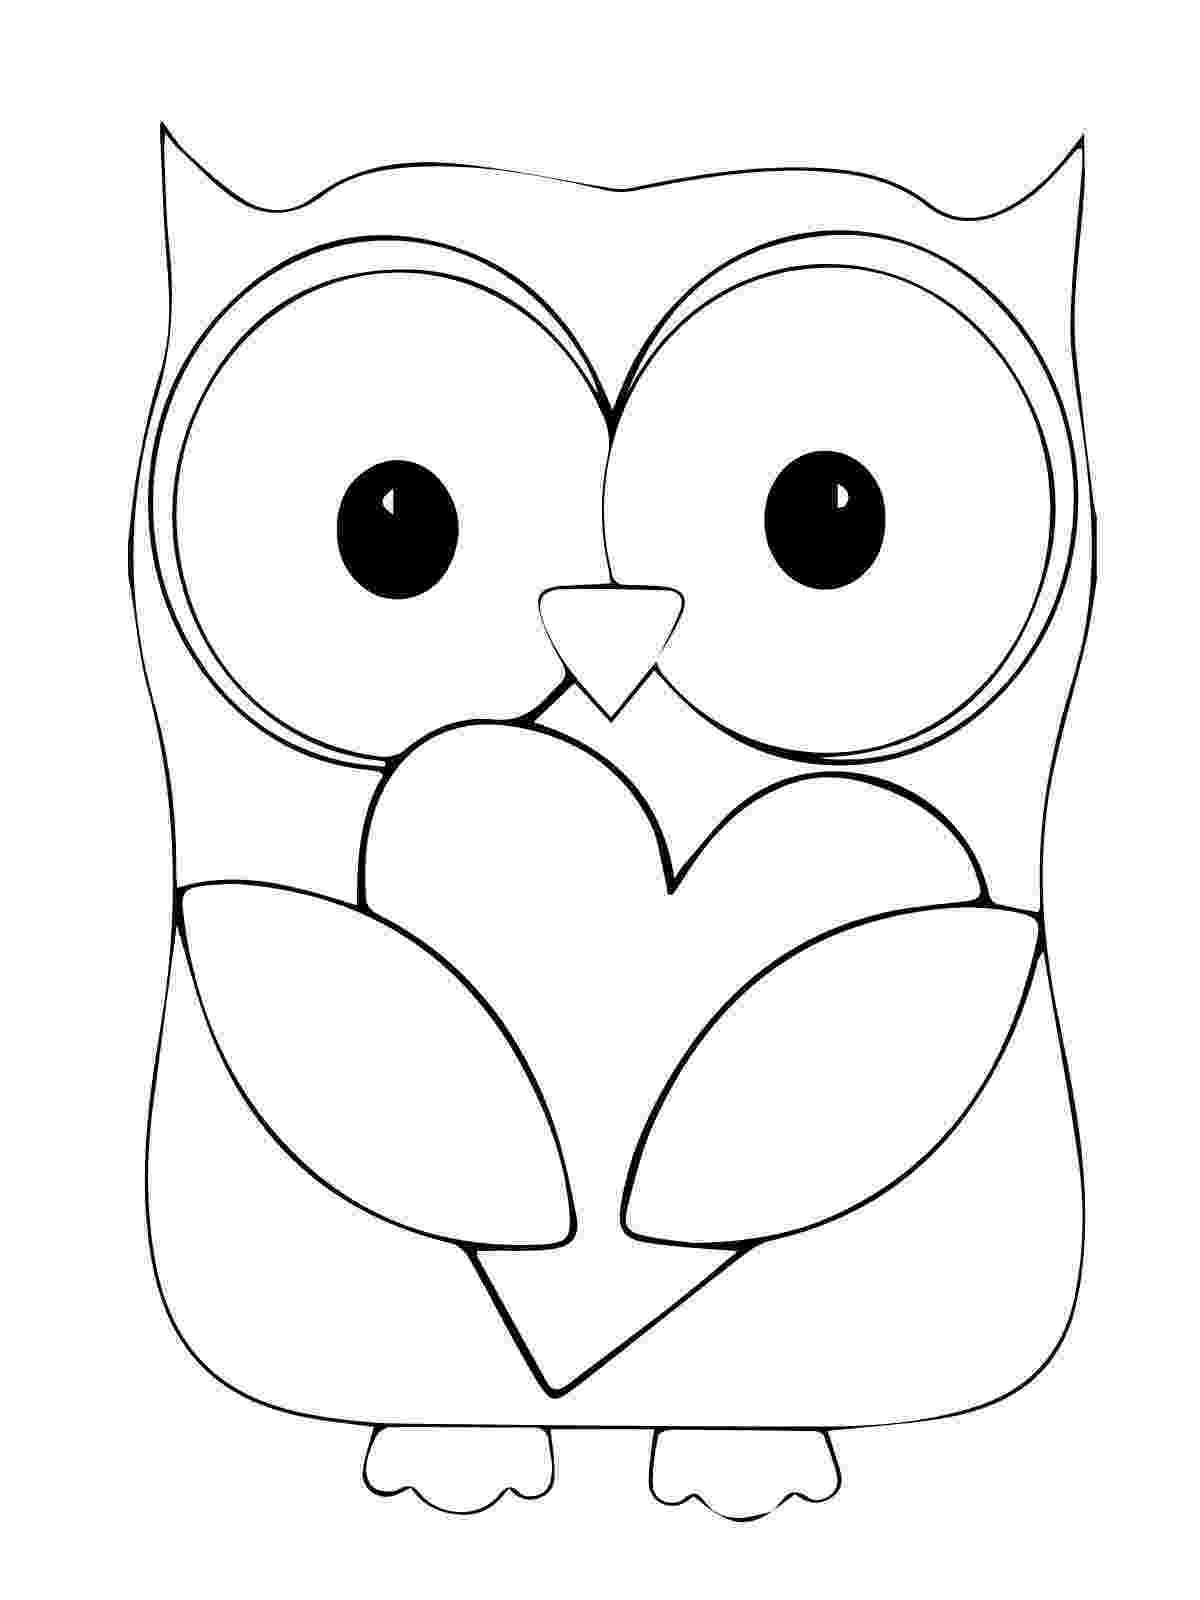 printable owl colouring 1000 images about owl on pinterest coloring baby owls owl colouring printable